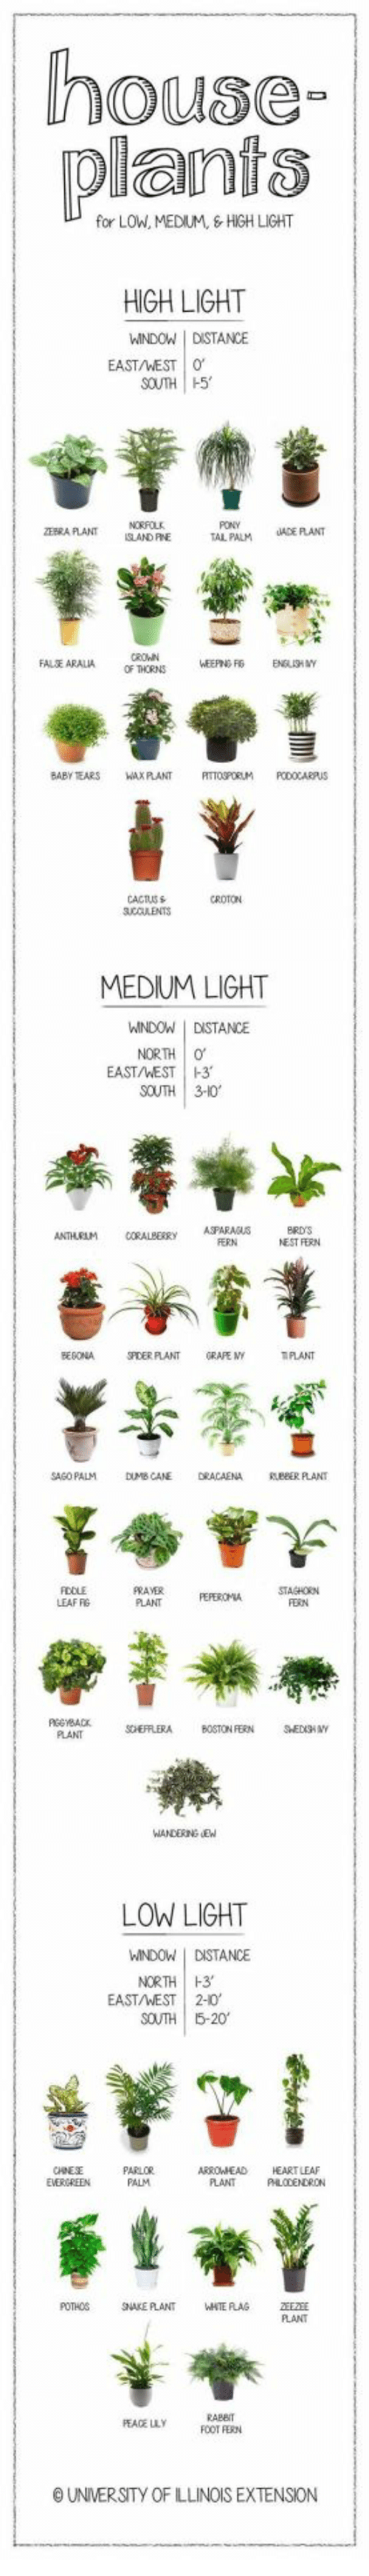 Illinois: house  plants  for LOW, MEDIUM, HIGH LIGHT  HIGH LIGHT  WINDOW I DSTANCE  EAST/WEST 0  SOUTH H5  EBRA PLANT  ISLAND FINE  PONY  TAL PALM UADEFLANT  FALJE ARALIA  OF THORNS  BABY TEARS WAX PLANT TOSPORLM ODOCARPUS  MEDIUM LIGHT  WINDOW I DISTANCE  NORTH  EAST/WEST  1-3.  SOUTH 3-10  ANTHURLM CORABERRY ASPARASUS  ERN  NEST FERN  MHPLANT  GRA氏NY  TPLANT  SAGO PALM DUMBCANE DRACAENA KUBBER PLANT  PRAVER  PLANT FEPEROMA STAGHORN  LEAF RG  FERN  SOHEFFLERA BOSTON FERN  PLANT  LOW LIGHT  WINDOWDISTANCE  NORTH H3  EAST/WEST |  2-10,  SOUTH 5-20  PARLOR  PALM  ARROWHEAD HEART LEA  PLANT  POTHOS SNAKE PLANT  RABEIT  FOOT FERN  PEACE LLY  O UNIVERSITY OF ILLINOIS EXTENSION